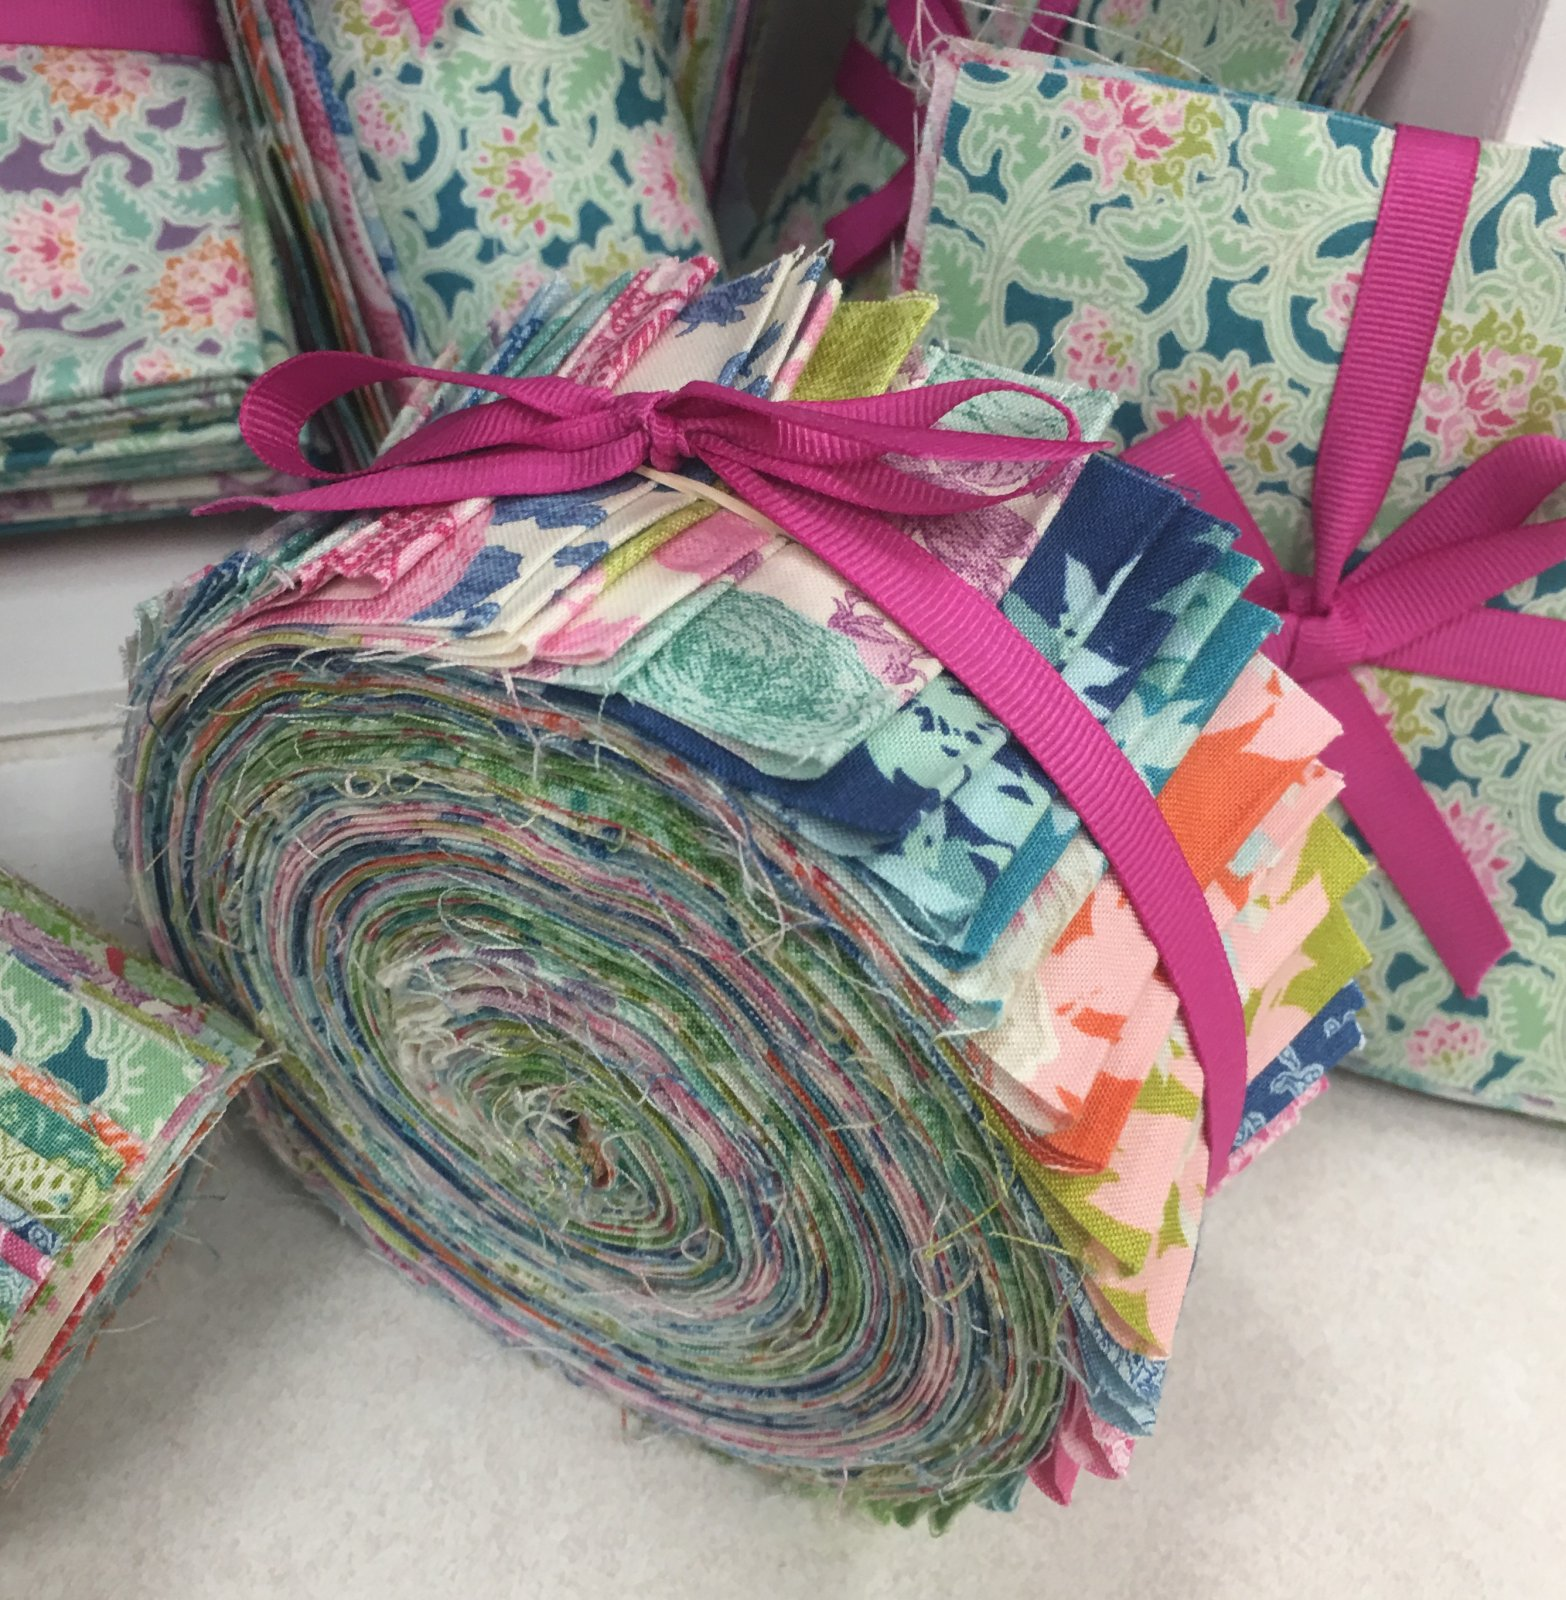 Regal Fabrics and Gifts image 21